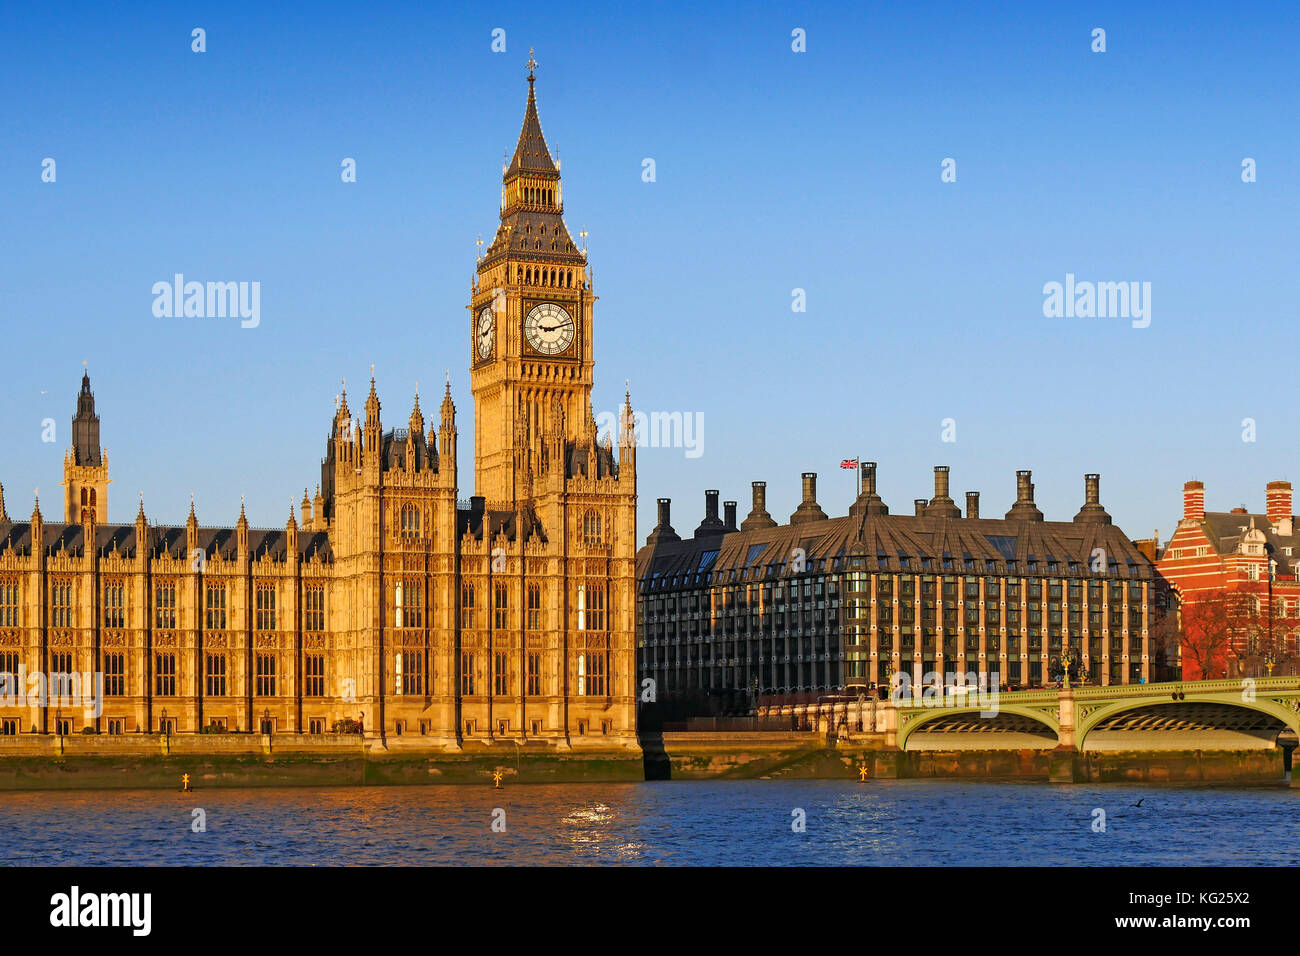 Big Ben, Houses of Parliament, UNESCO World Heritage  Site, London, England, United Kingdom, Europe - Stock Image